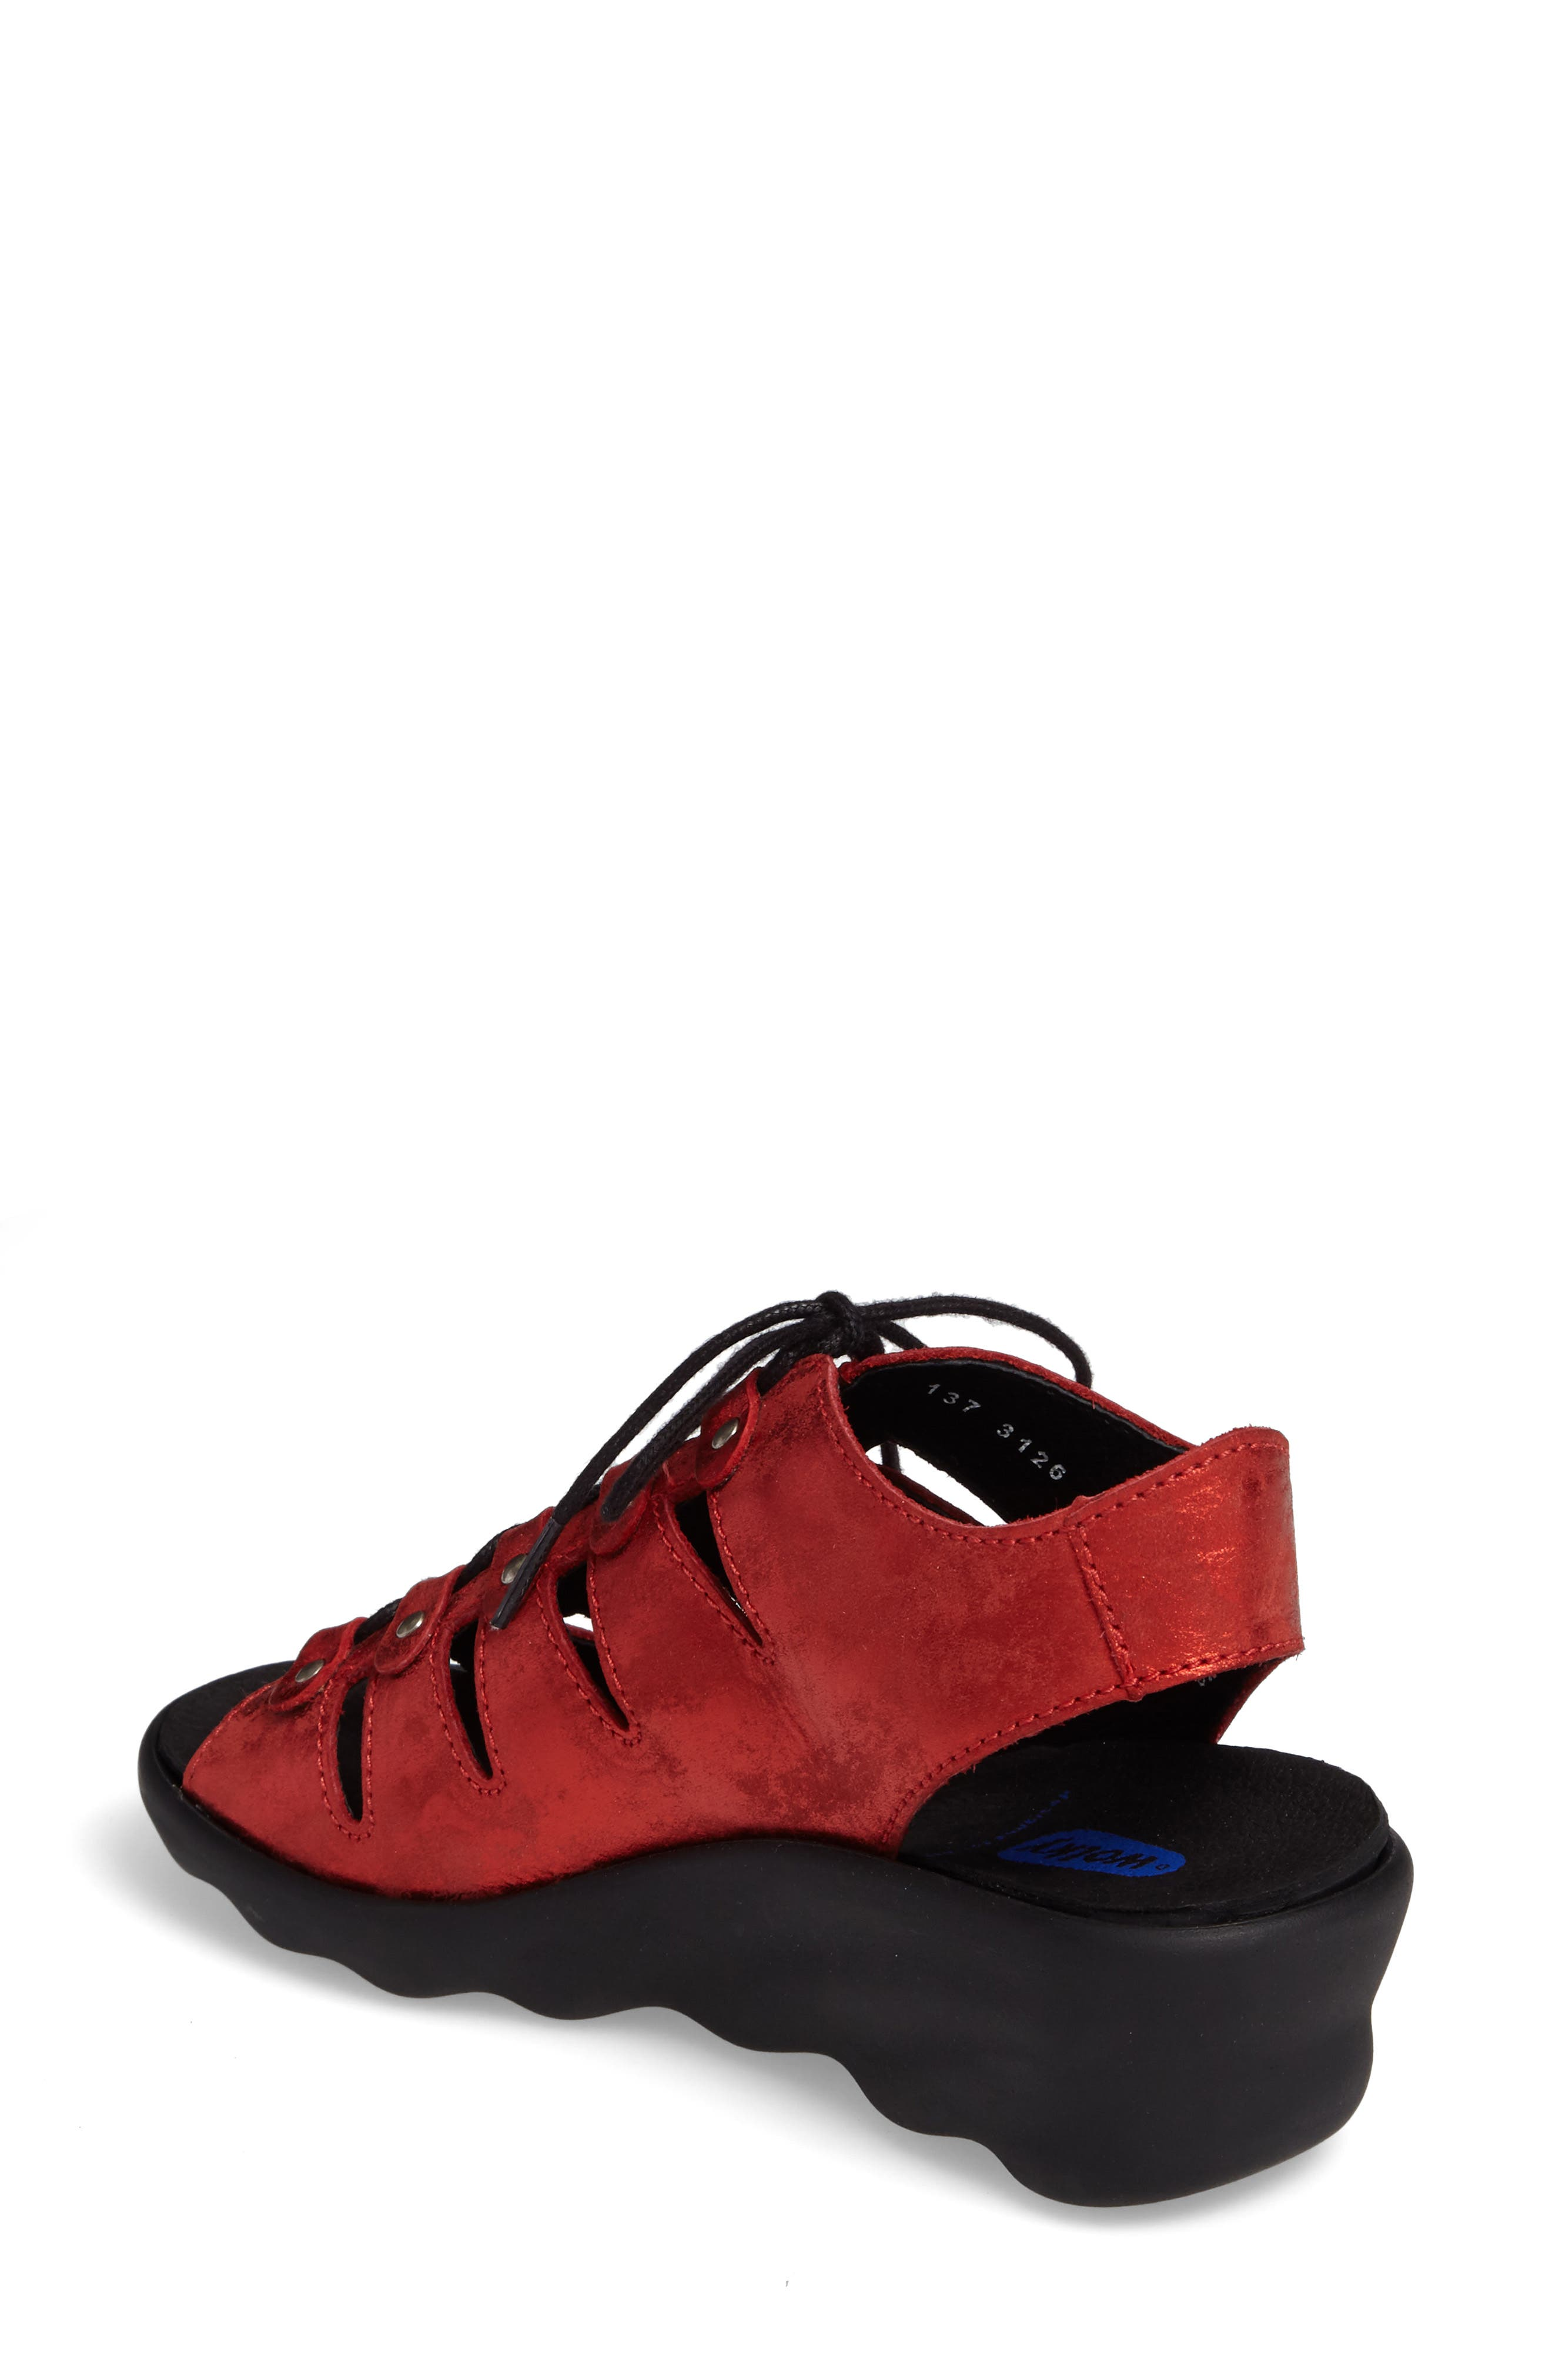 Arena Sandal,                             Alternate thumbnail 2, color,                             Red Nubuck Leather